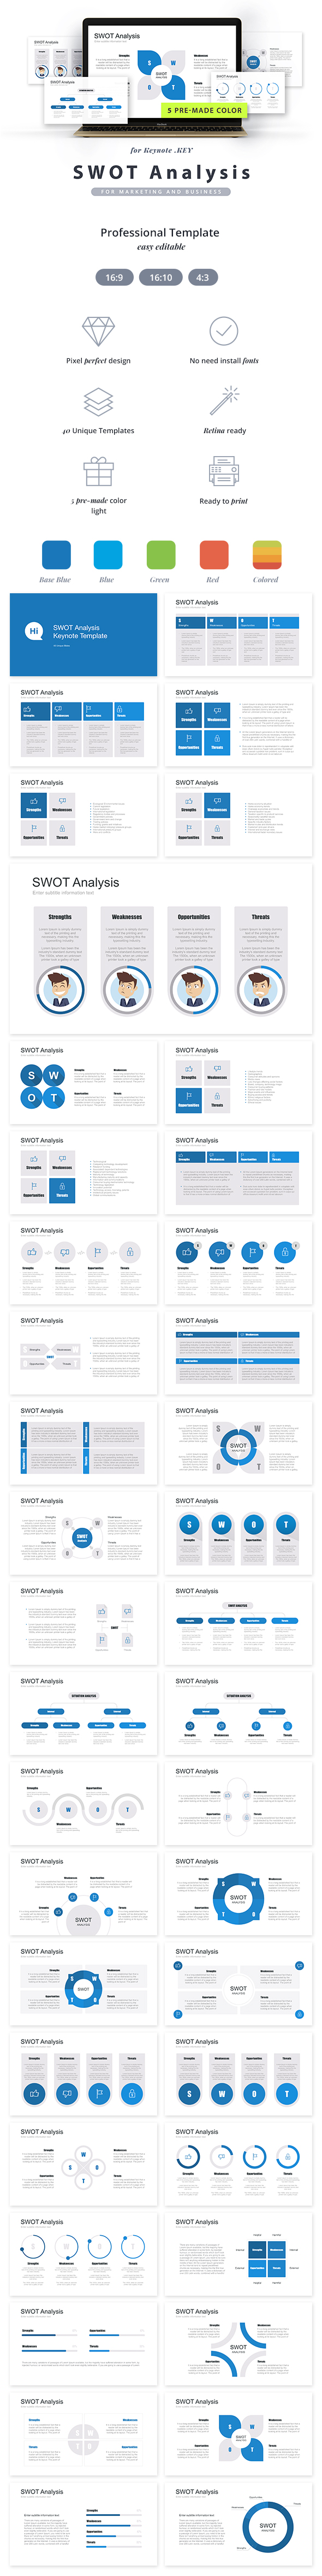 Swot Analysis Keynote Template by Site2max | GraphicRiver